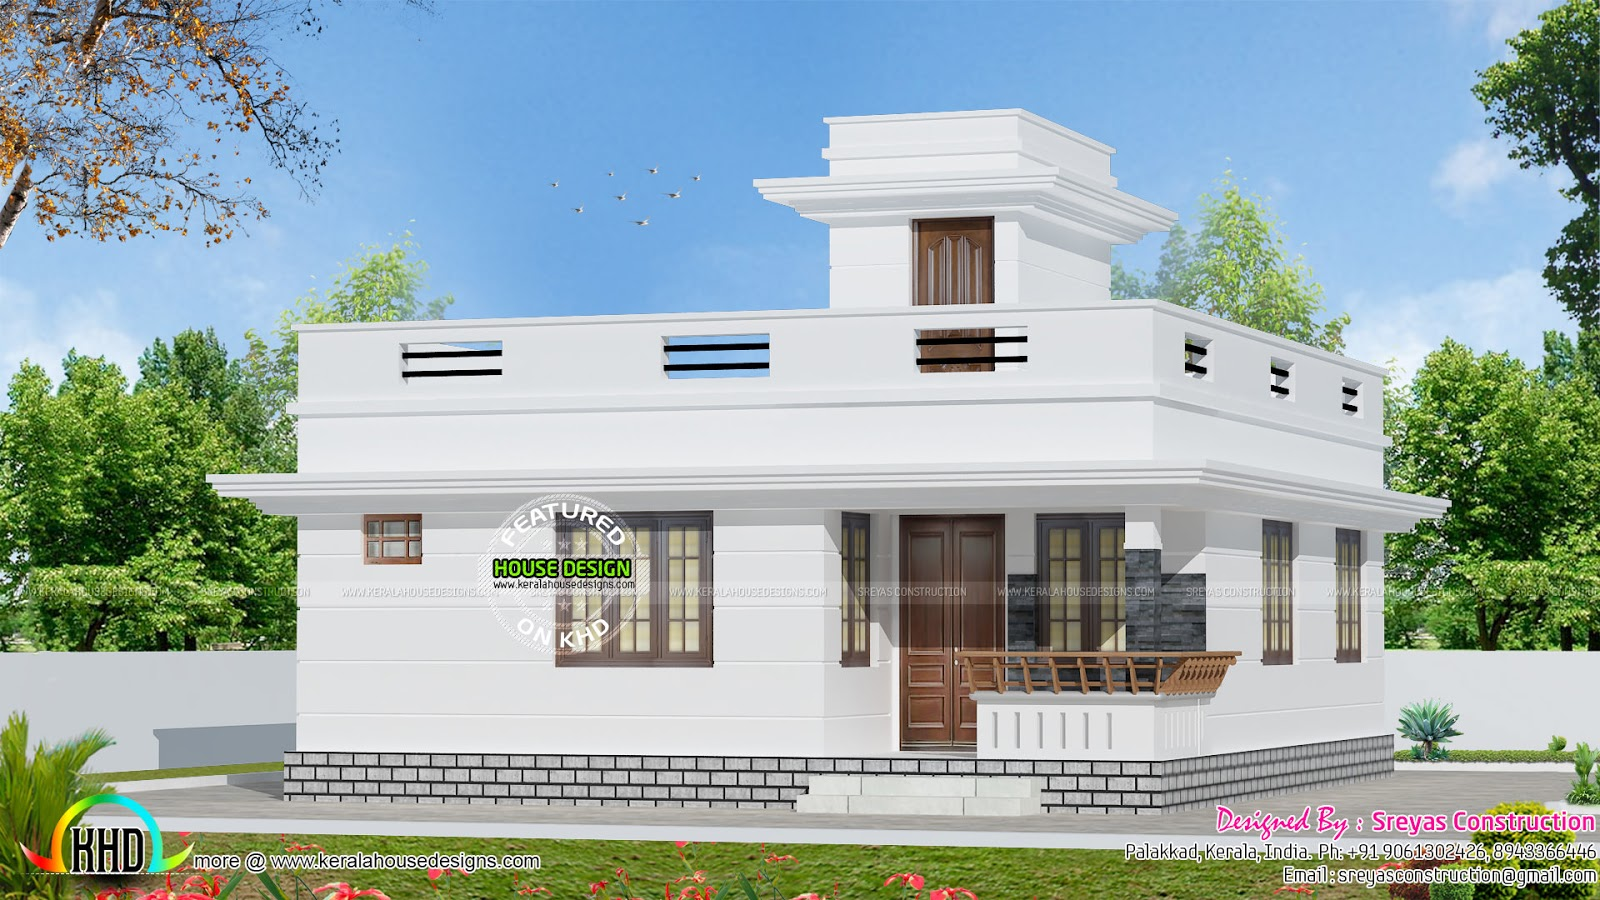 882 sq ft small house architecture kerala home design for Small house design kerala style